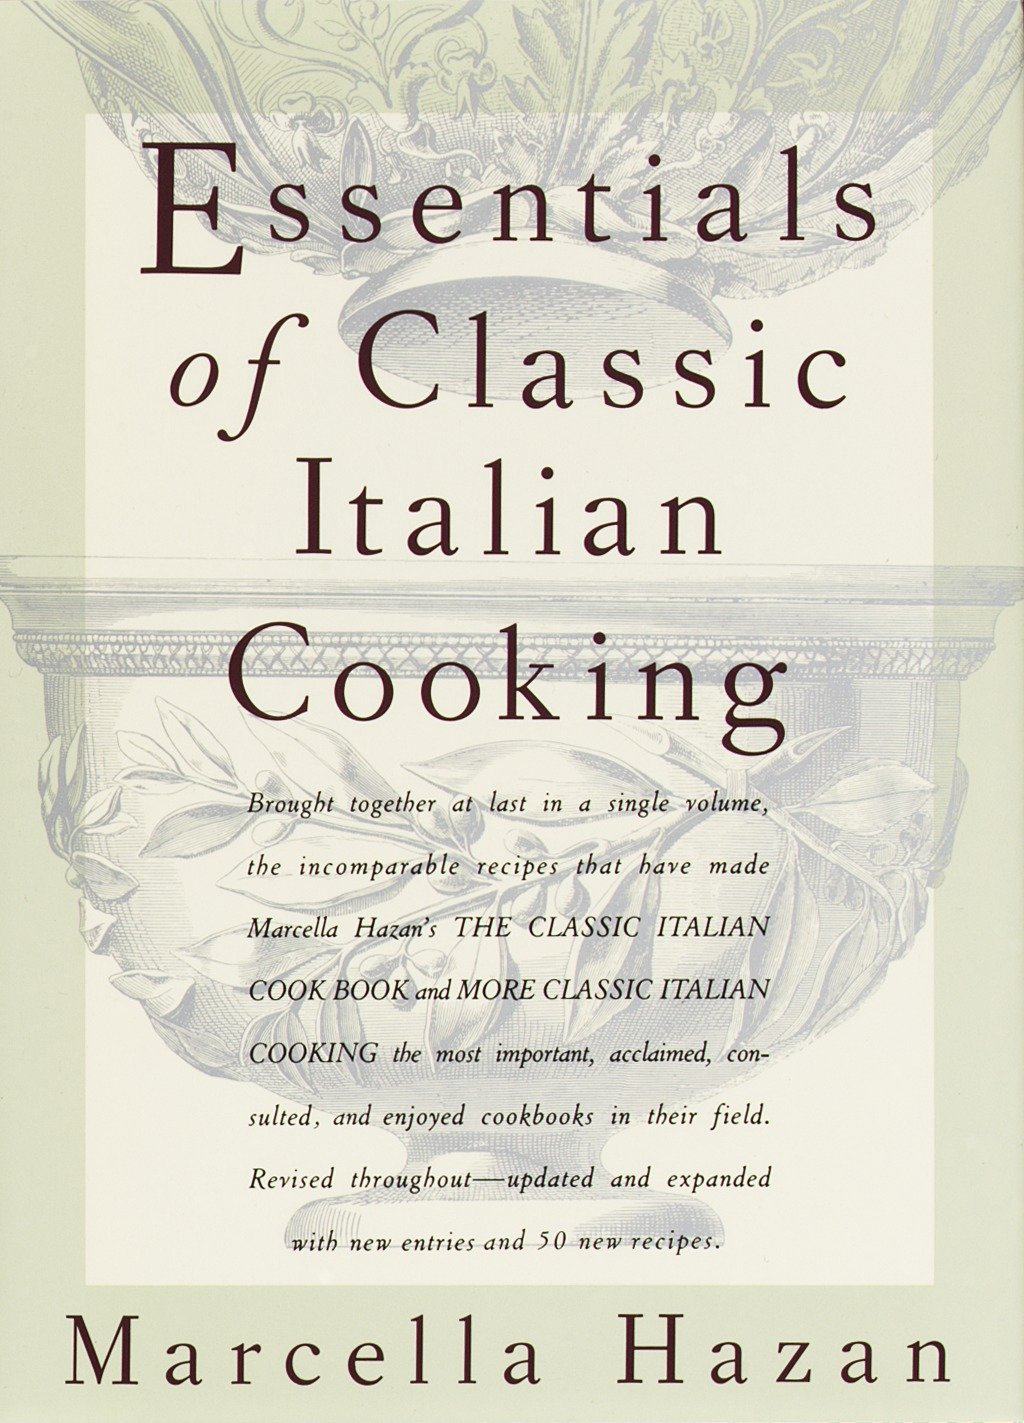 Image OfEssentials Of Classic Italian Cooking